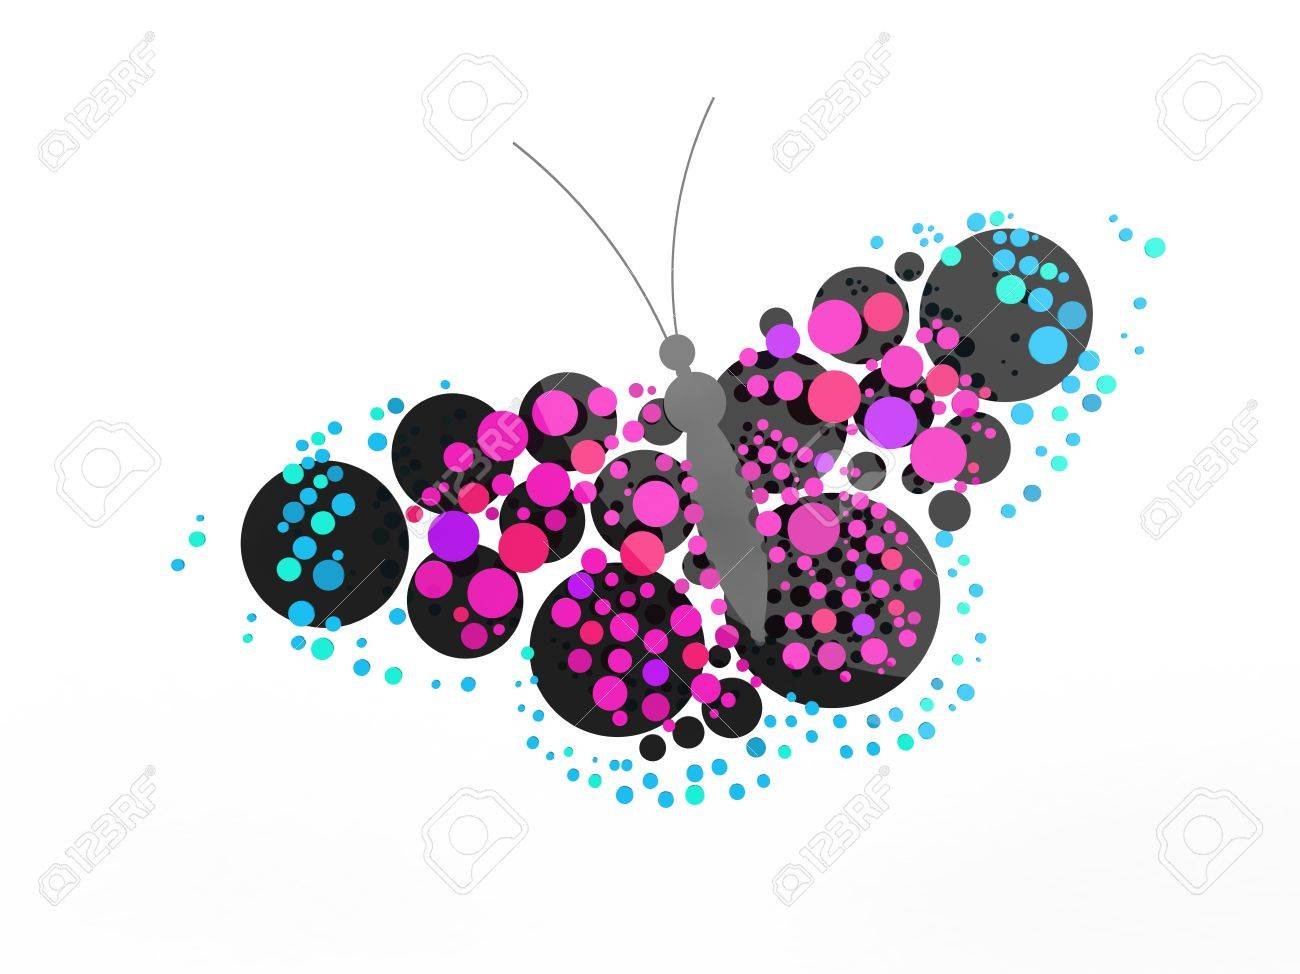 A rendered butterfly composed mostly of circles. Can be used as a logo or icon. Stock Photo - 19398526